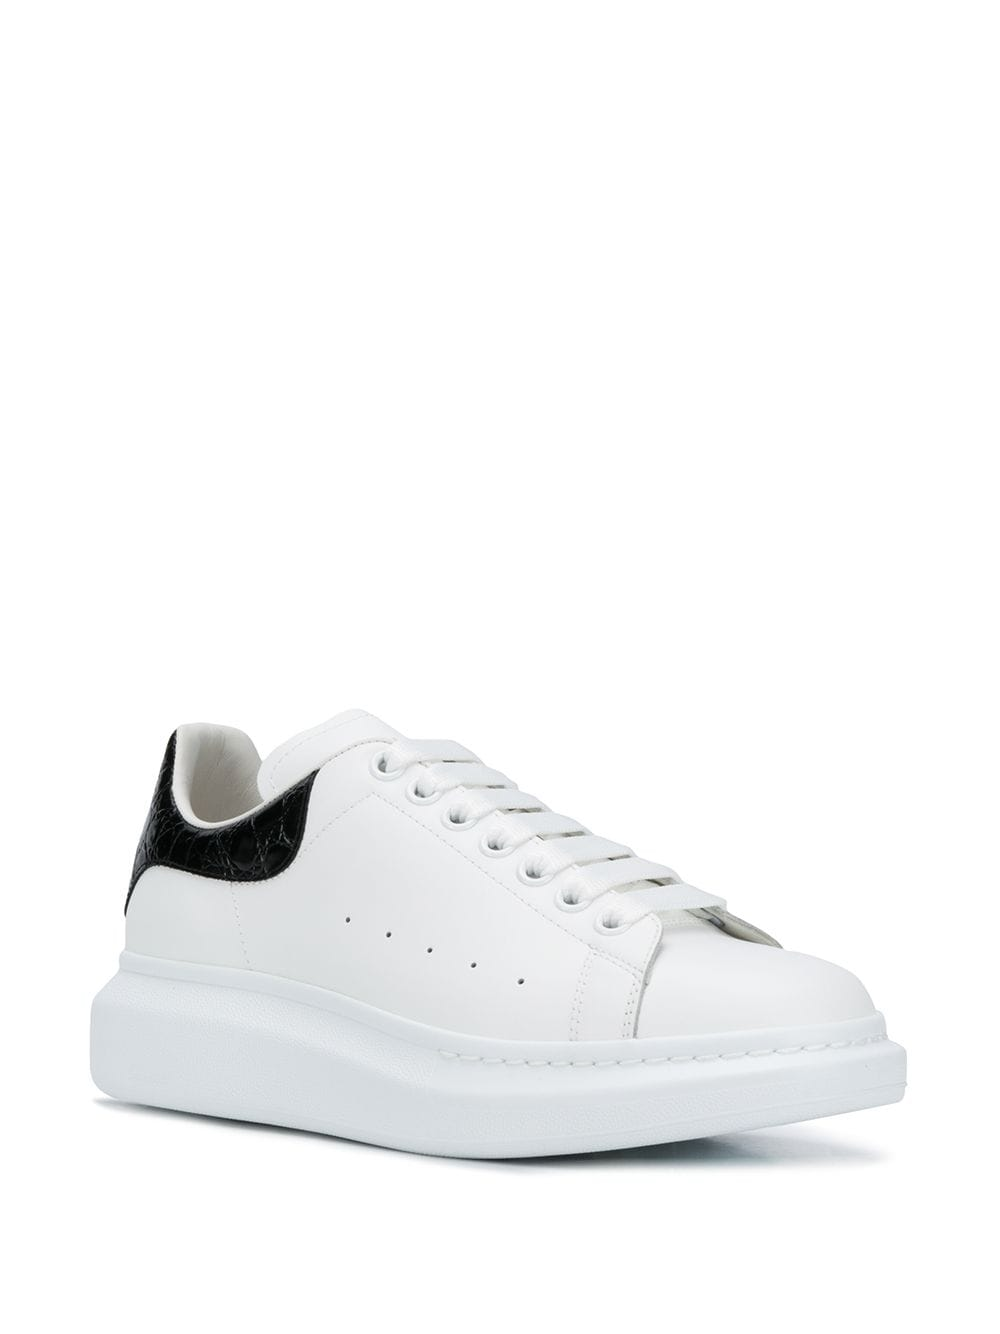 Alexander McQueen Oversized Sole Croc Leather Sneakers White